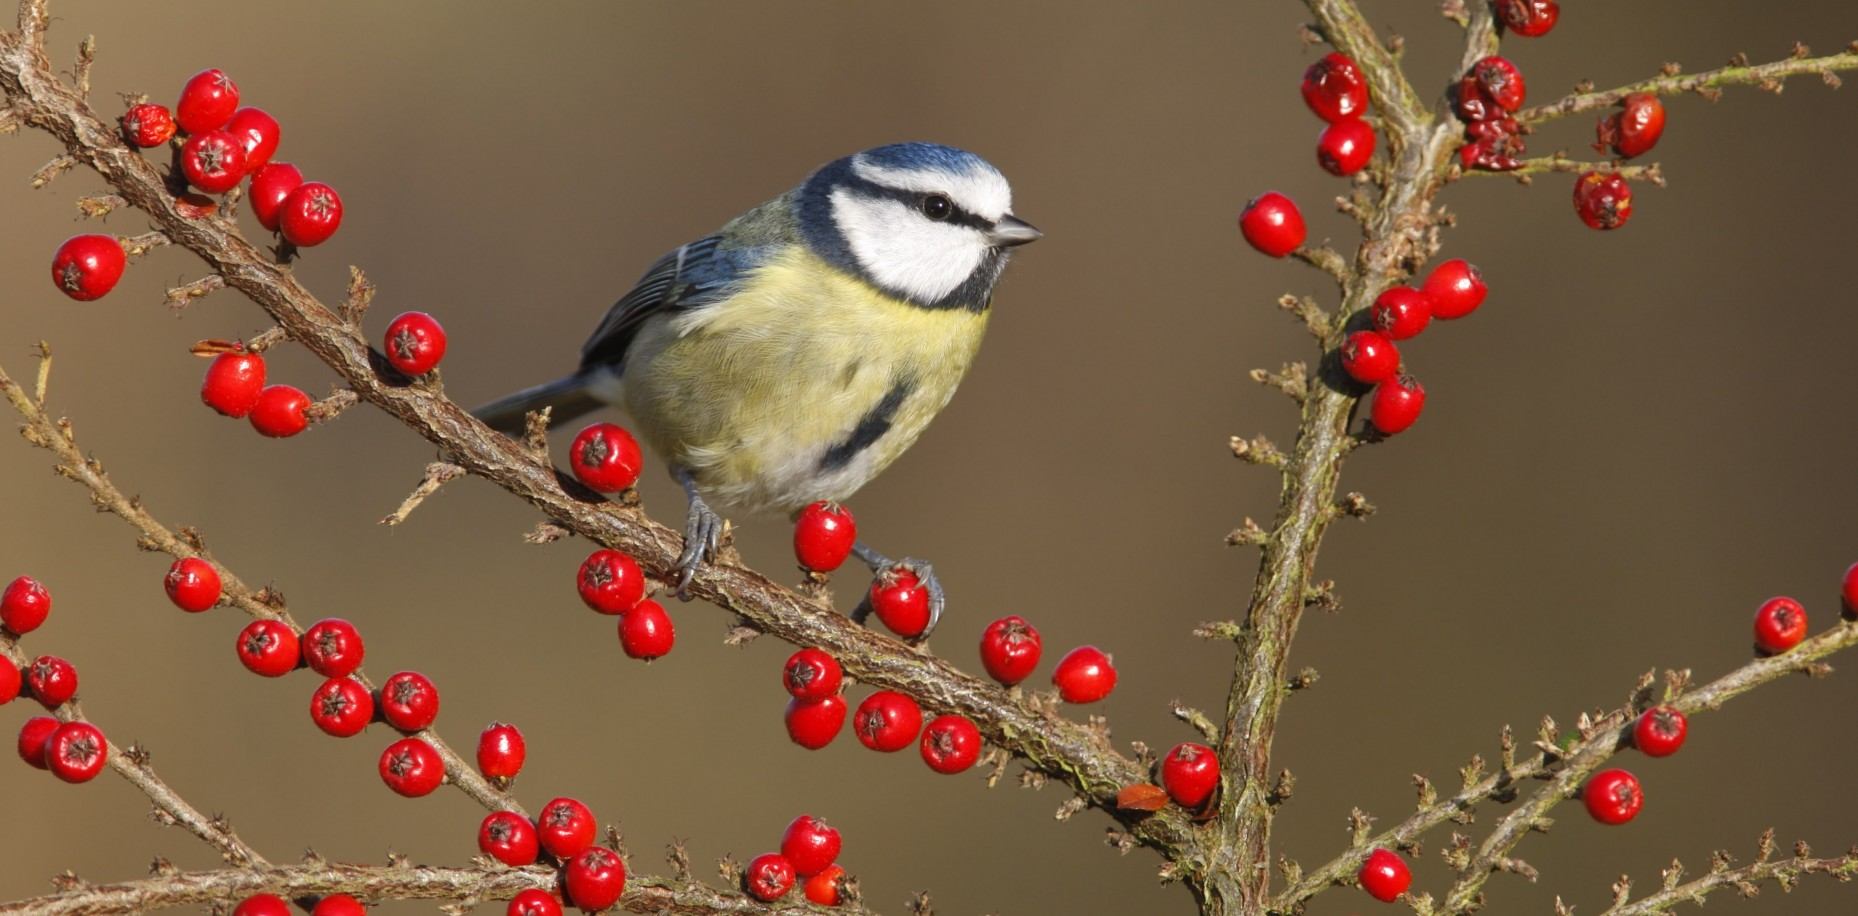 We're joining in this weekend with the RSPB Big Garden Birdwatch